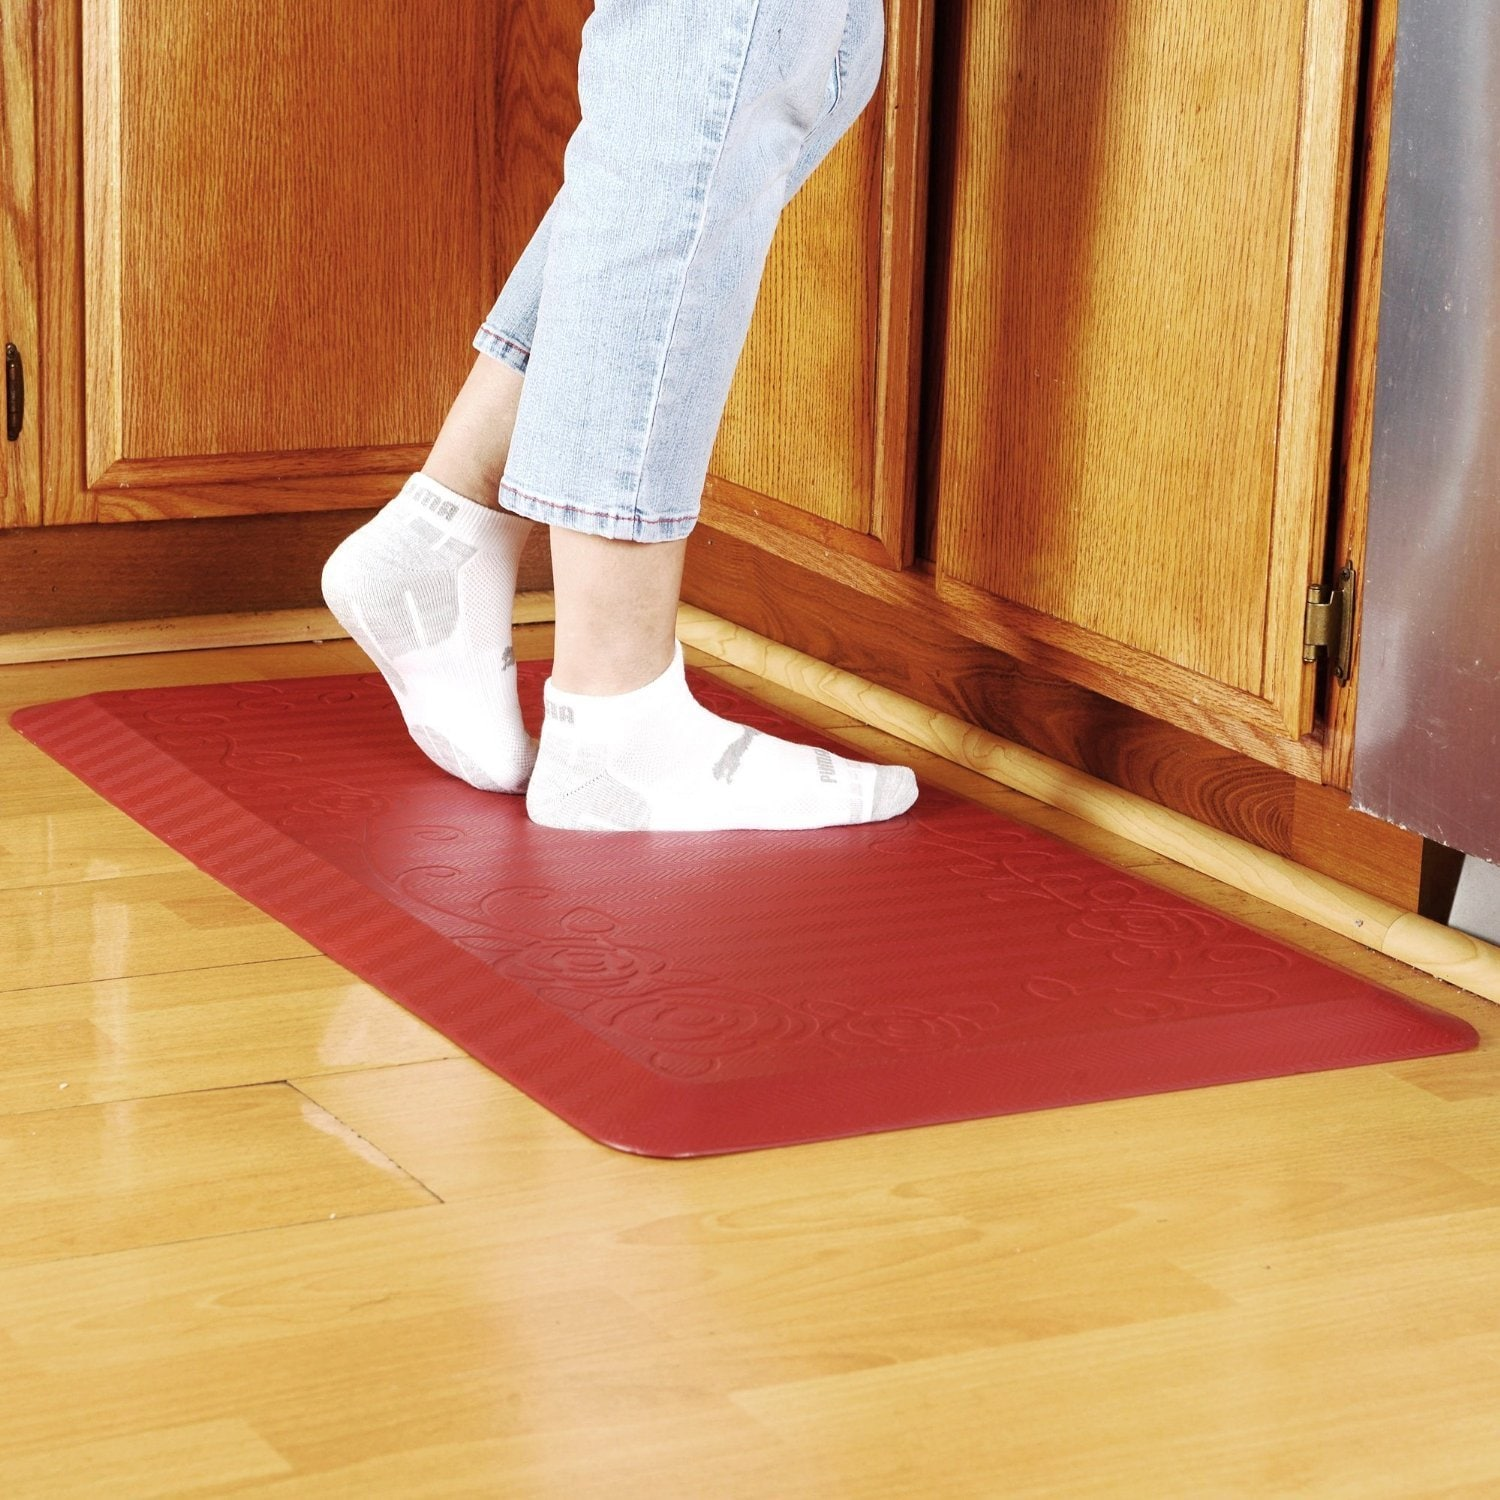 Shop Cook N Home Anti-Fatigue Comfort Mat, 39 x 20